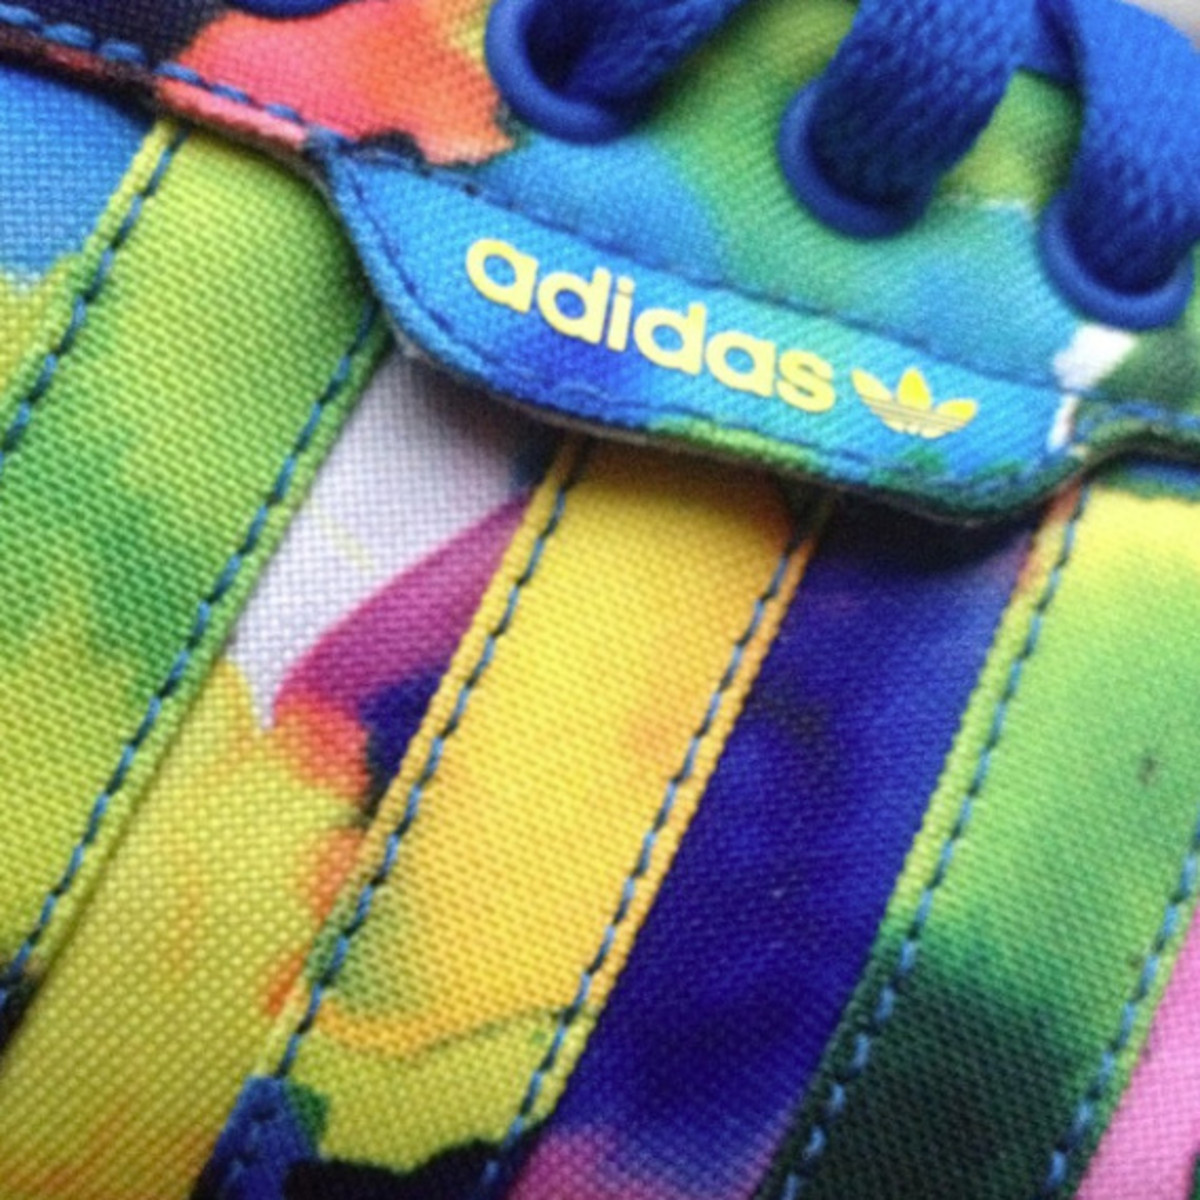 adidas Originals x HVW8 Gallery by Kevin Lyons & Jean André | Teaser - 2